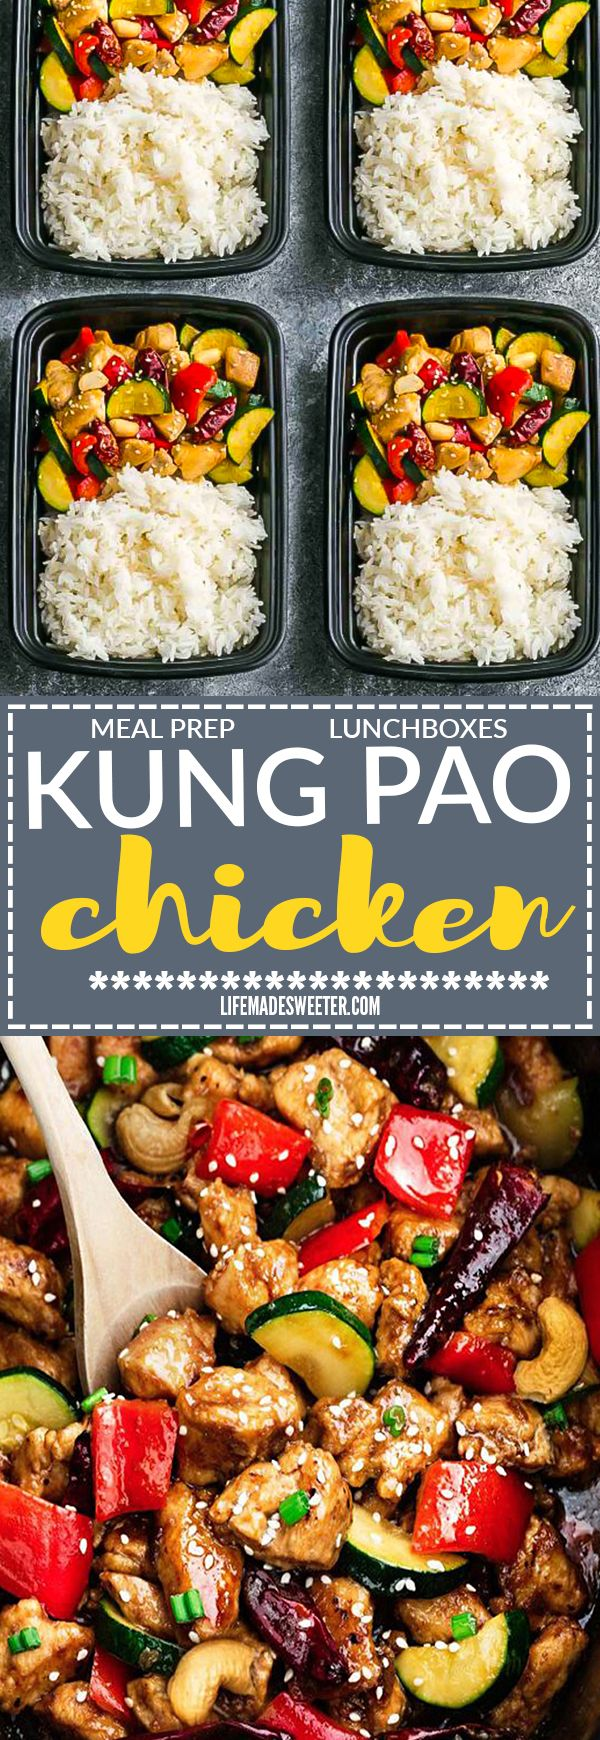 Kung Pao Chicken Stir Fry makes the perfect easy and lightened up healthy weeknight meal. Best of all,  less than 30 minutes to make in just ONE pan. This takeout favorite, is SO much healthier and better than your local Chinese restaurant with just a few minutes of prep time. With gluten free and paleo friendly options. Weekly meal prep or leftovers are great for lunch bowls or lunch boxes for work or school.